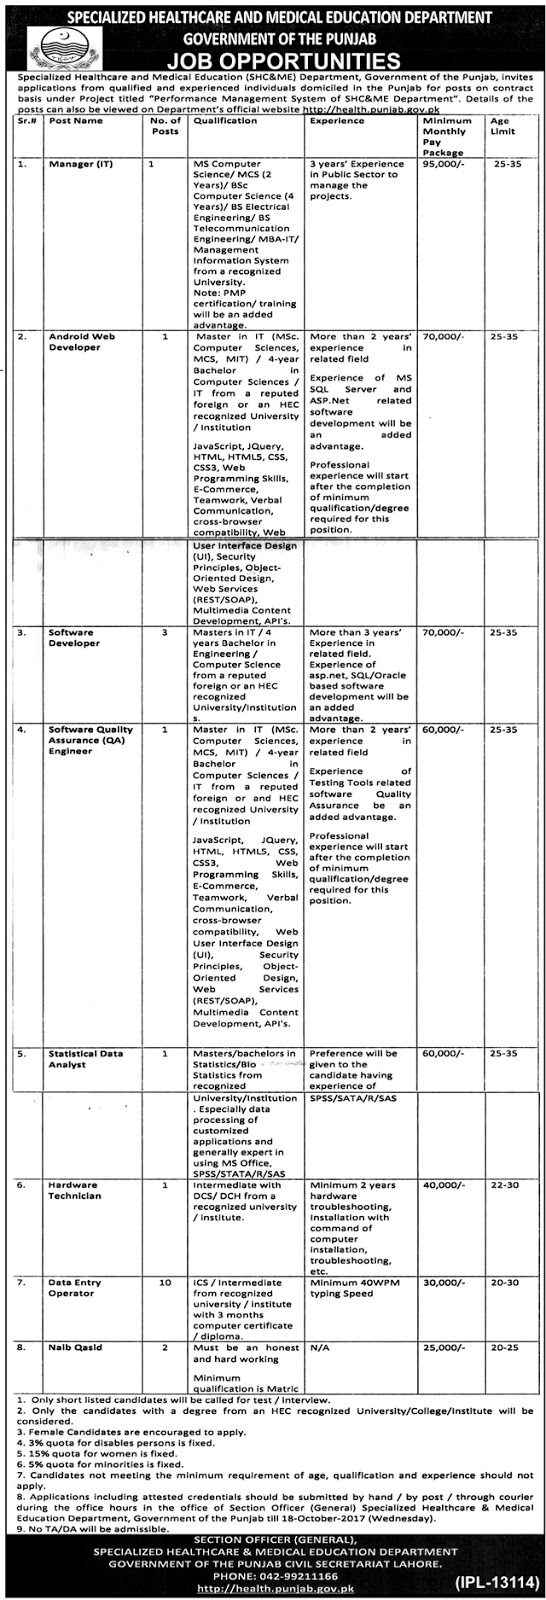 Jobs In Specialized Healthcare And Medical Education Department Punjab Lahore Oct 2017